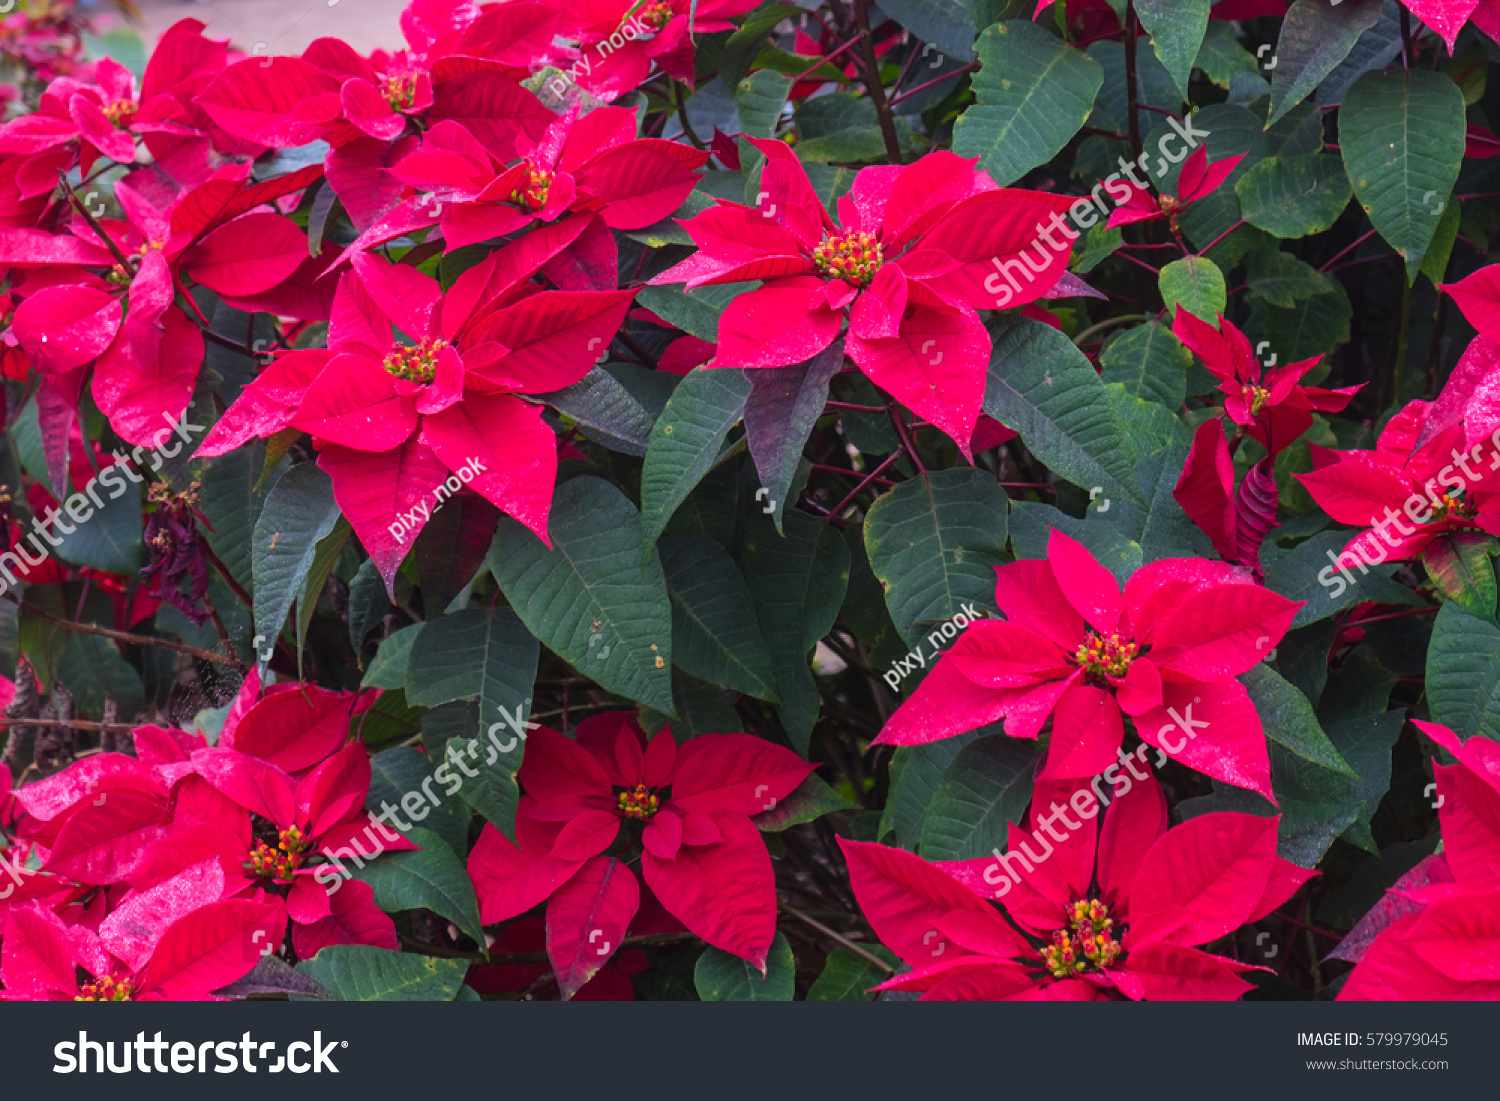 or red poinsettia - photo #39